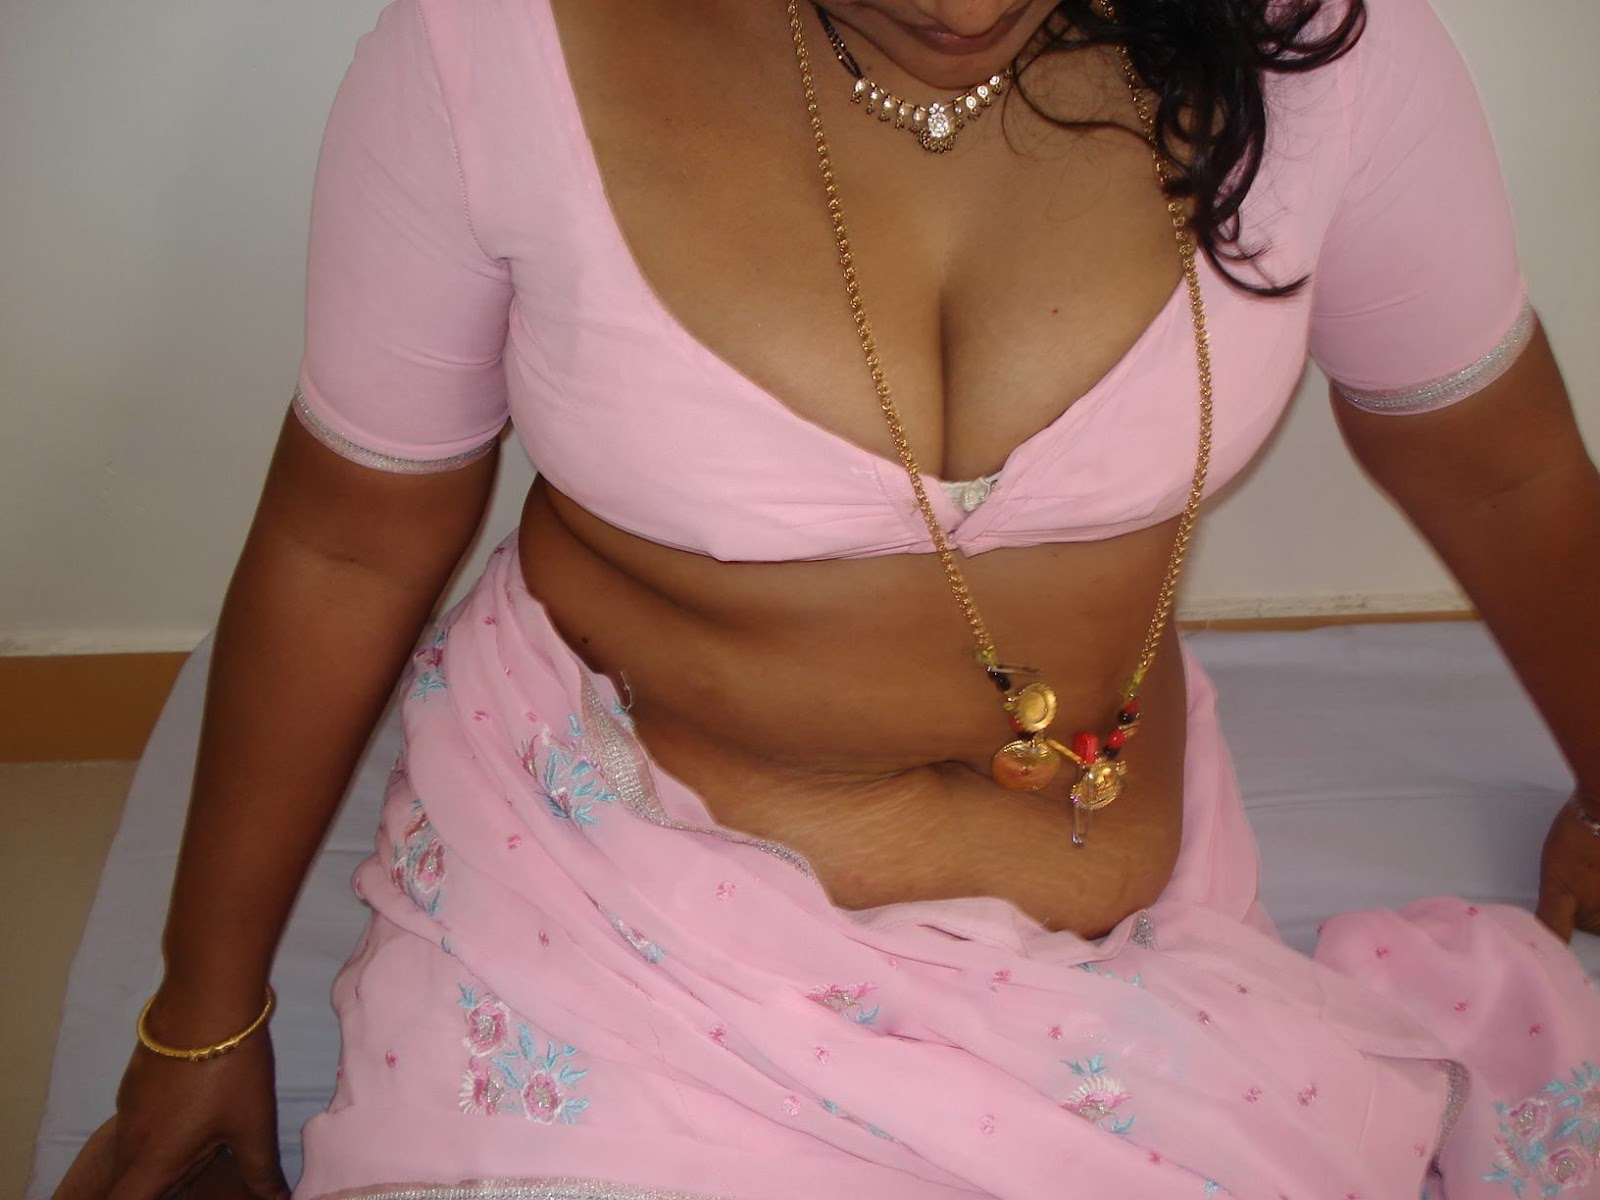 Aunties In Bra Aunty Nipples Big Boobs Desi Saree